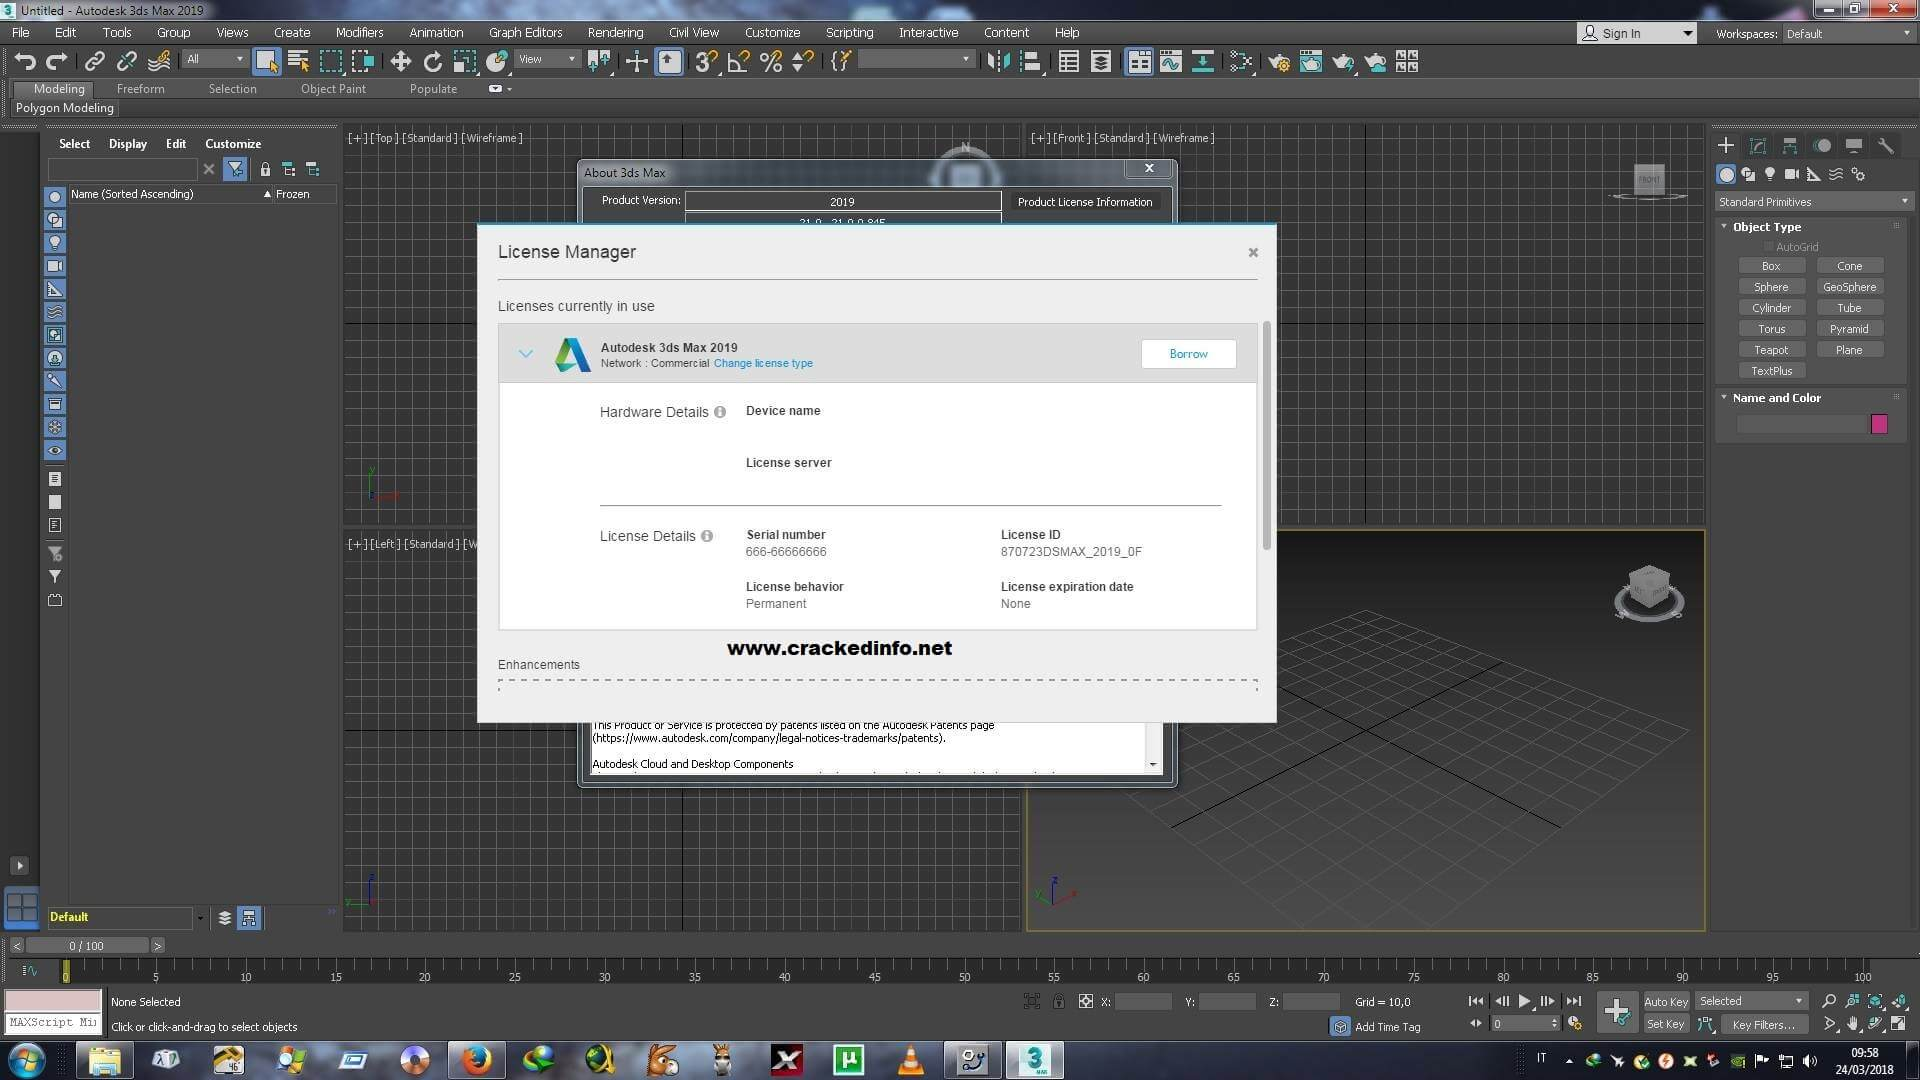 Autodesk 3ds Max 2019 Serial Number